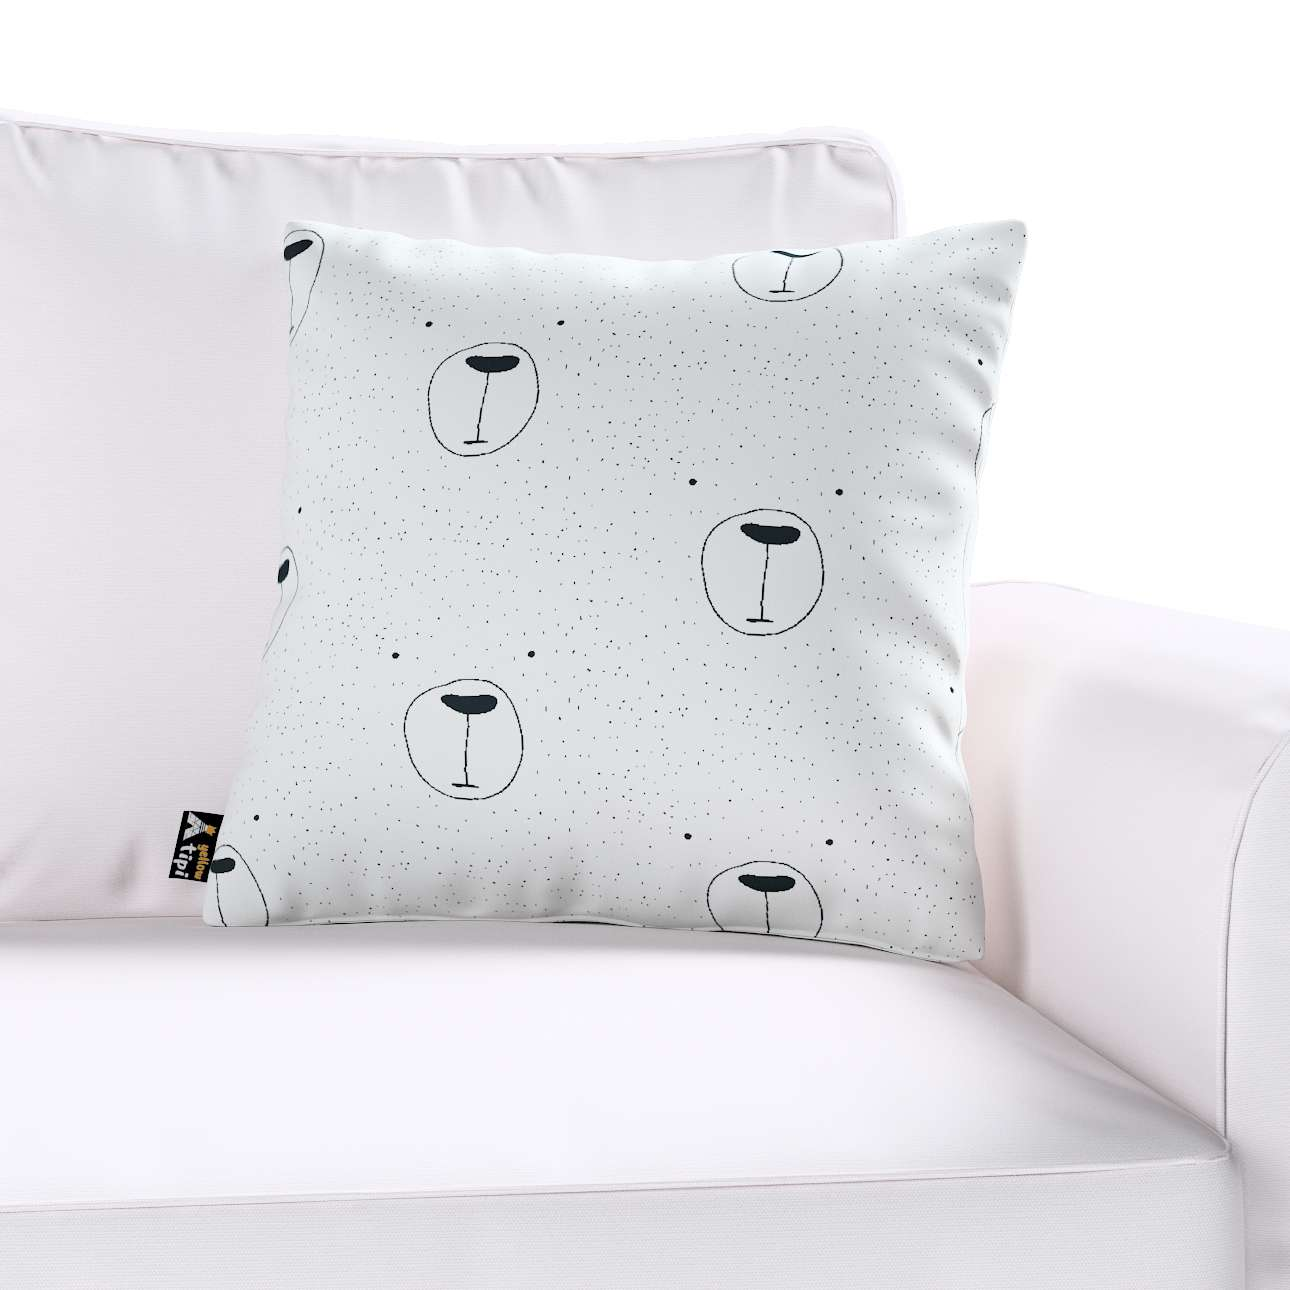 Milly cushion cover in collection Magic Collection, fabric: 500-06